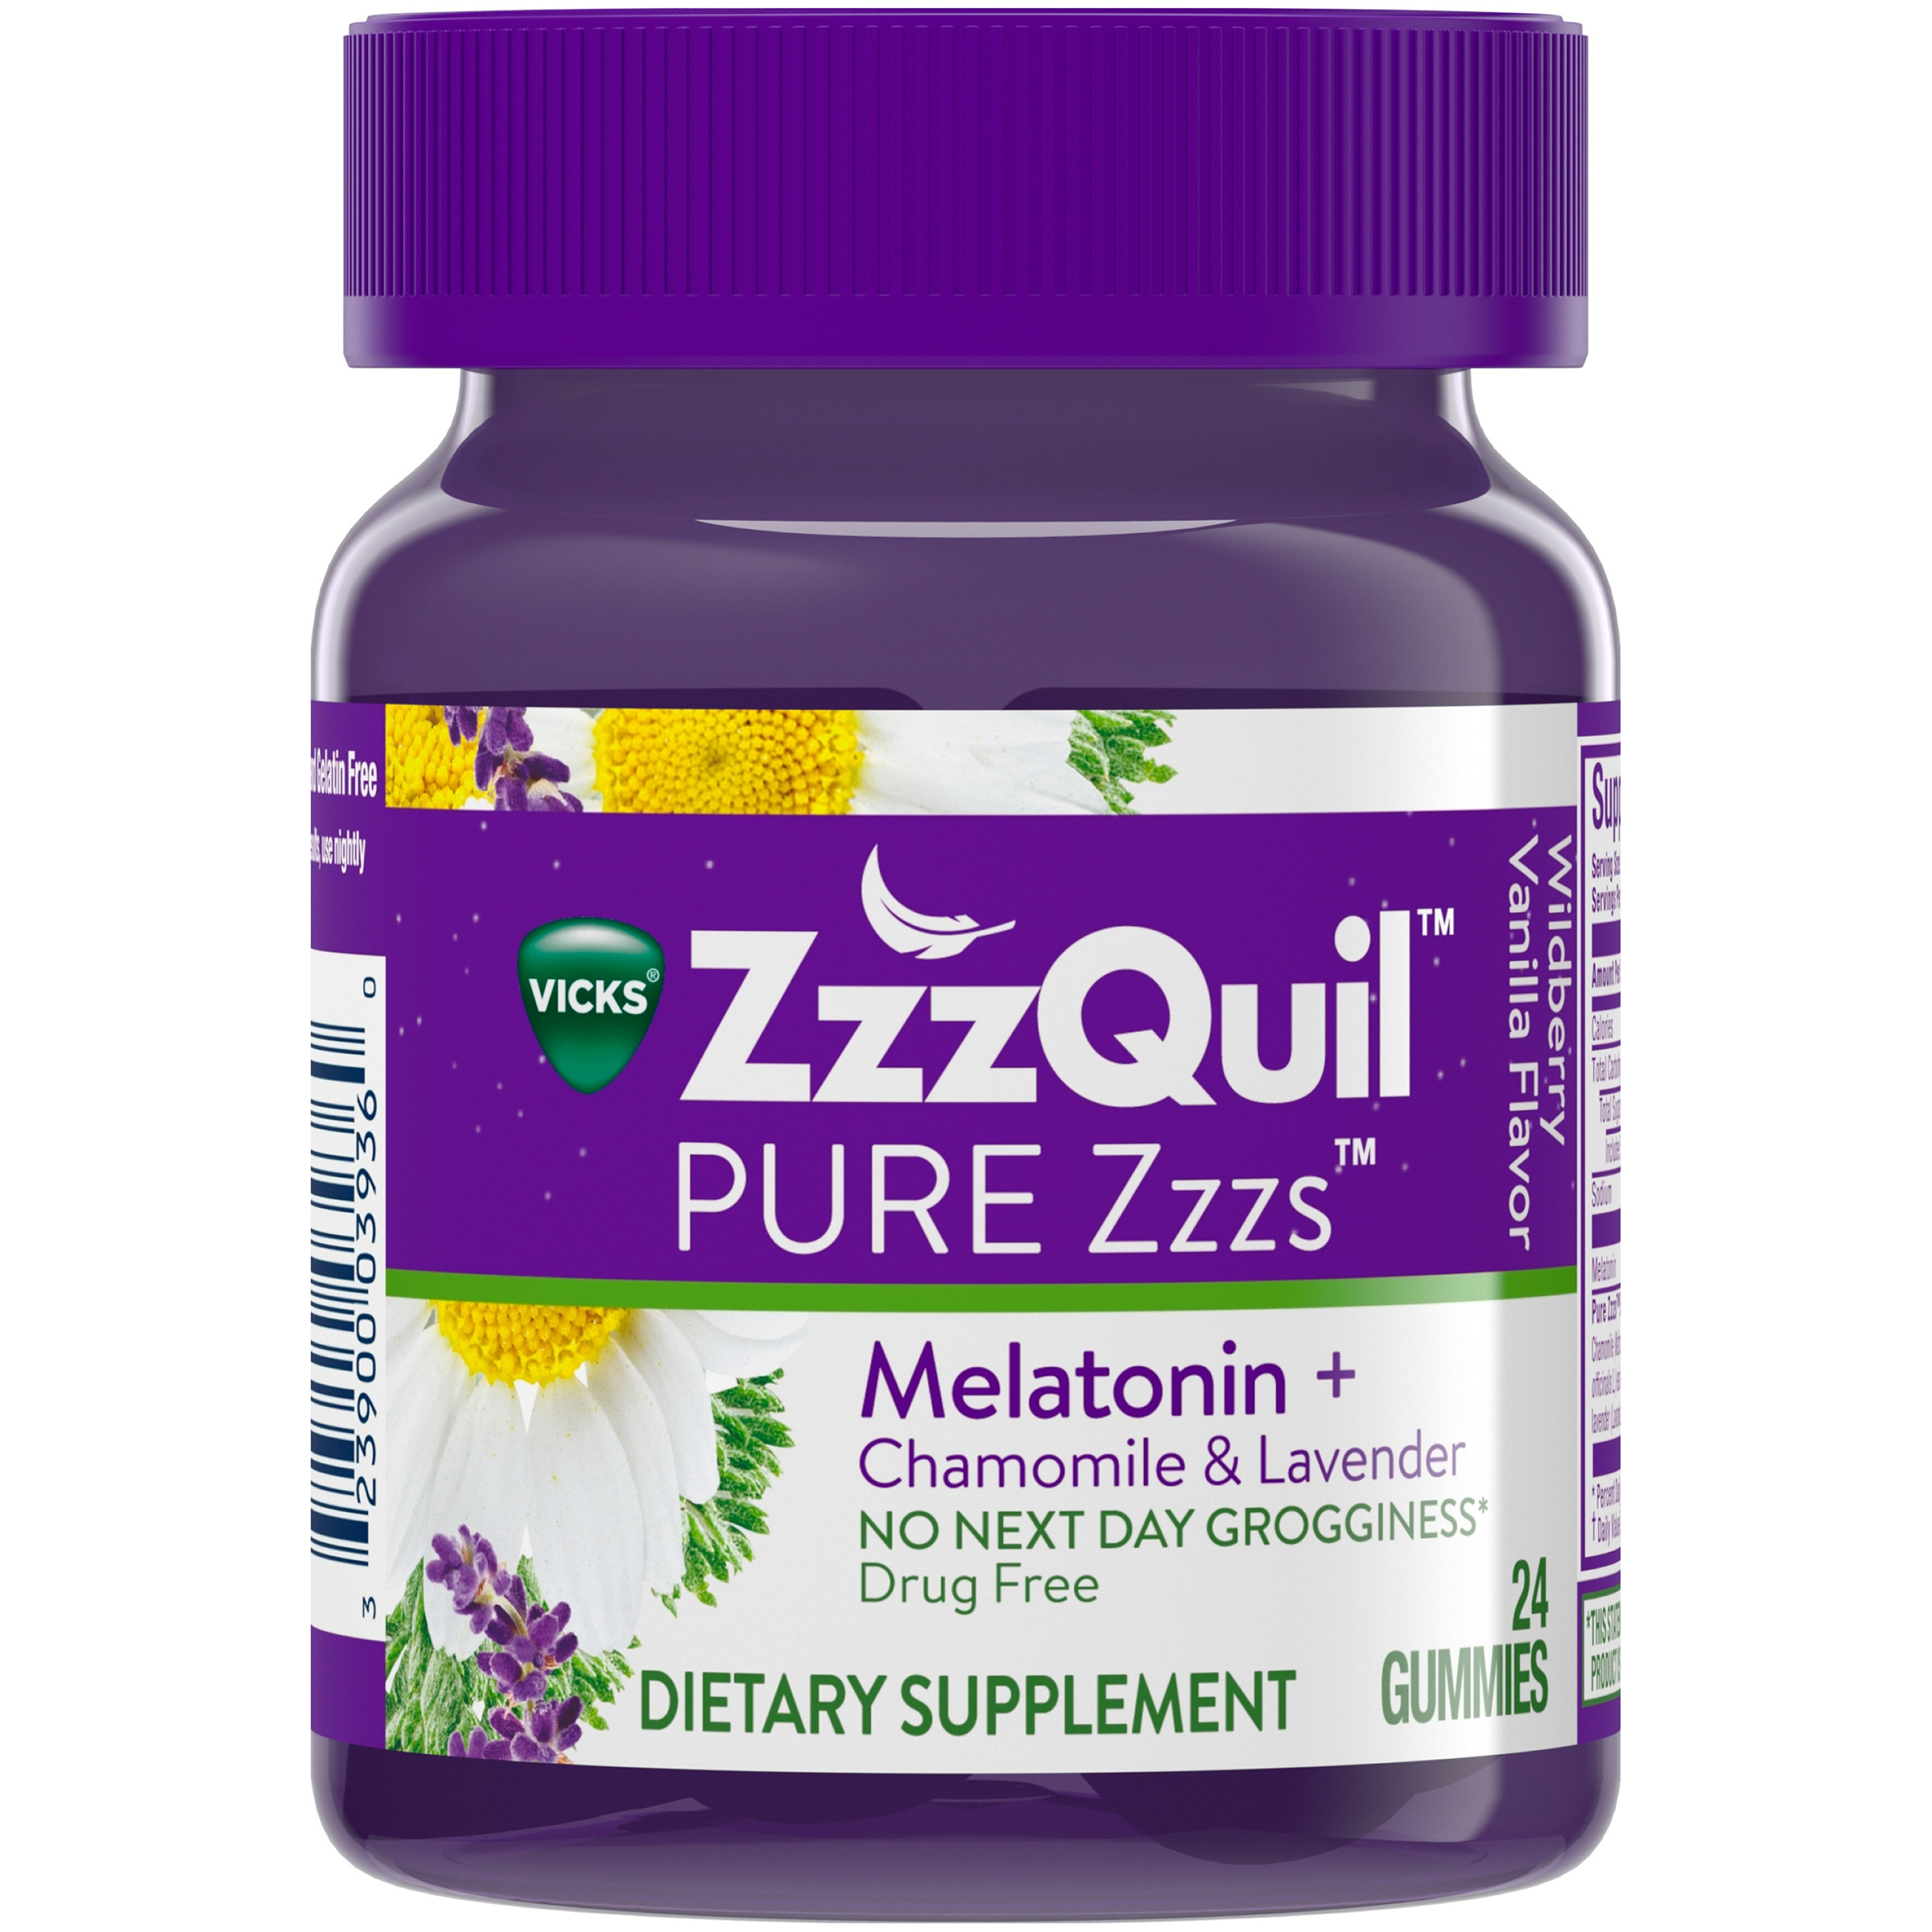 Vicks ZzzQuil PURE Zzzs Melatonin Sleep Aid Gummies, 24 ...